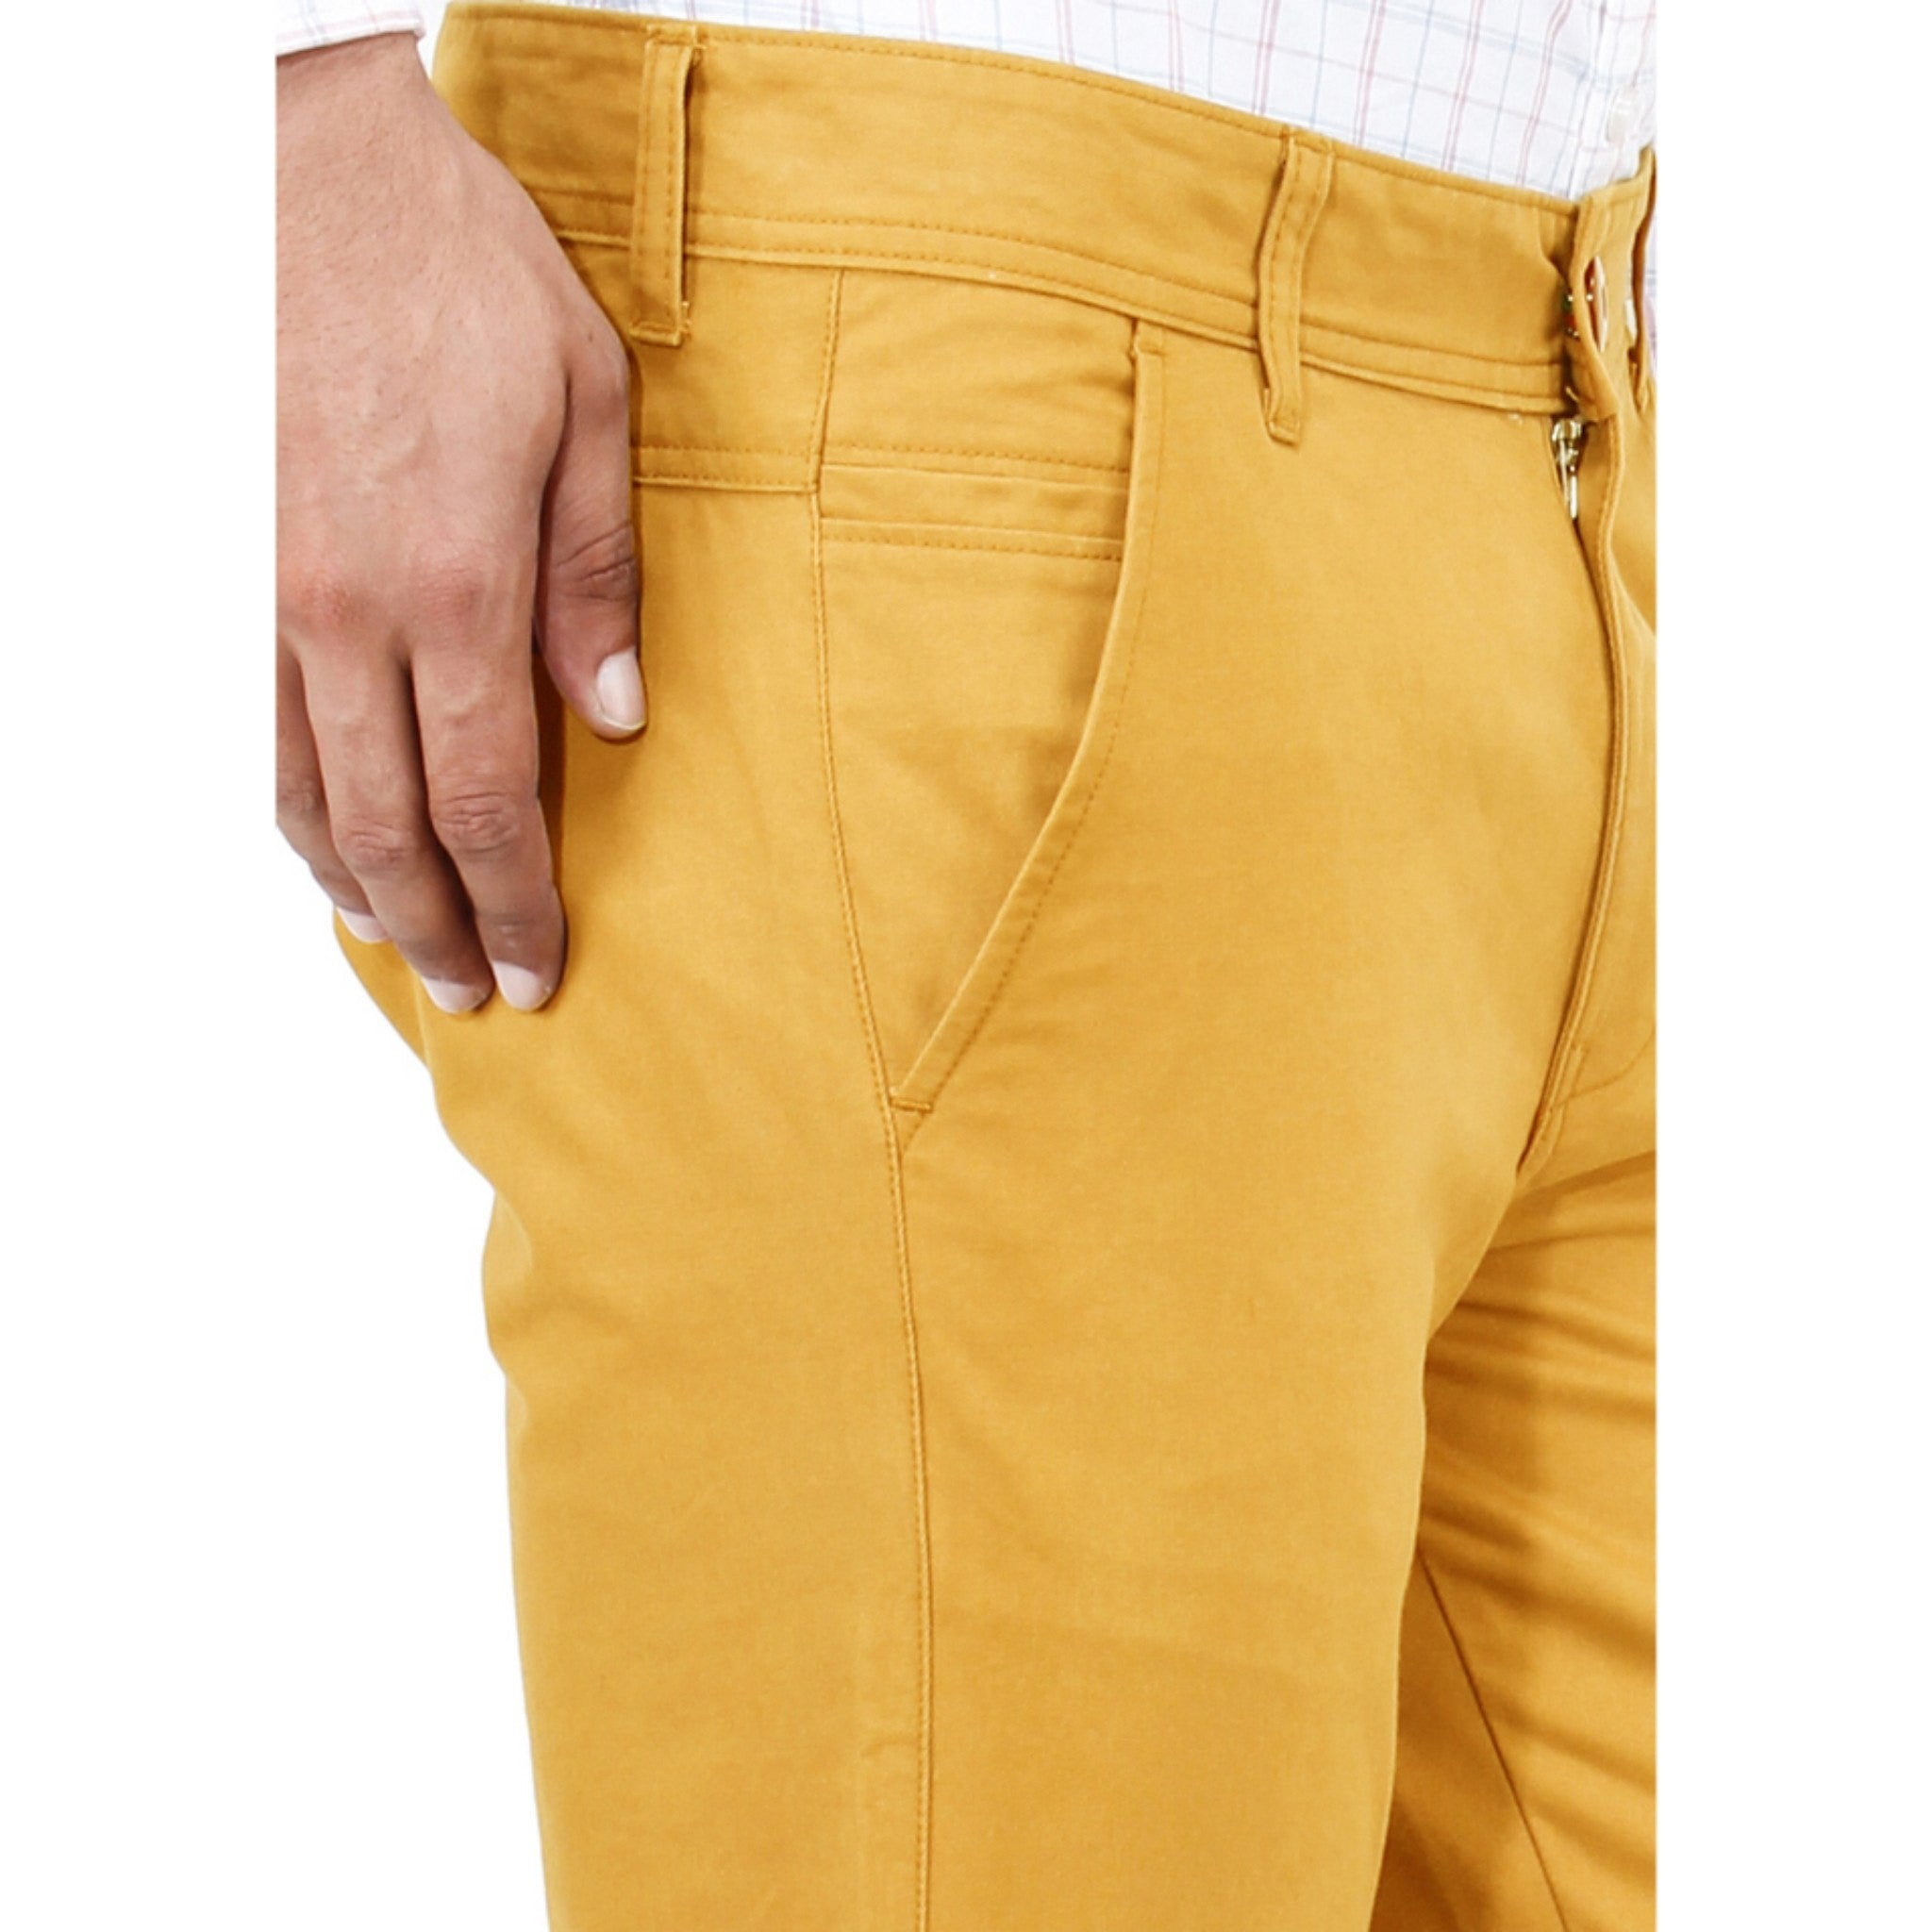 Uber Golden Yellow Rocky Trouser close up view